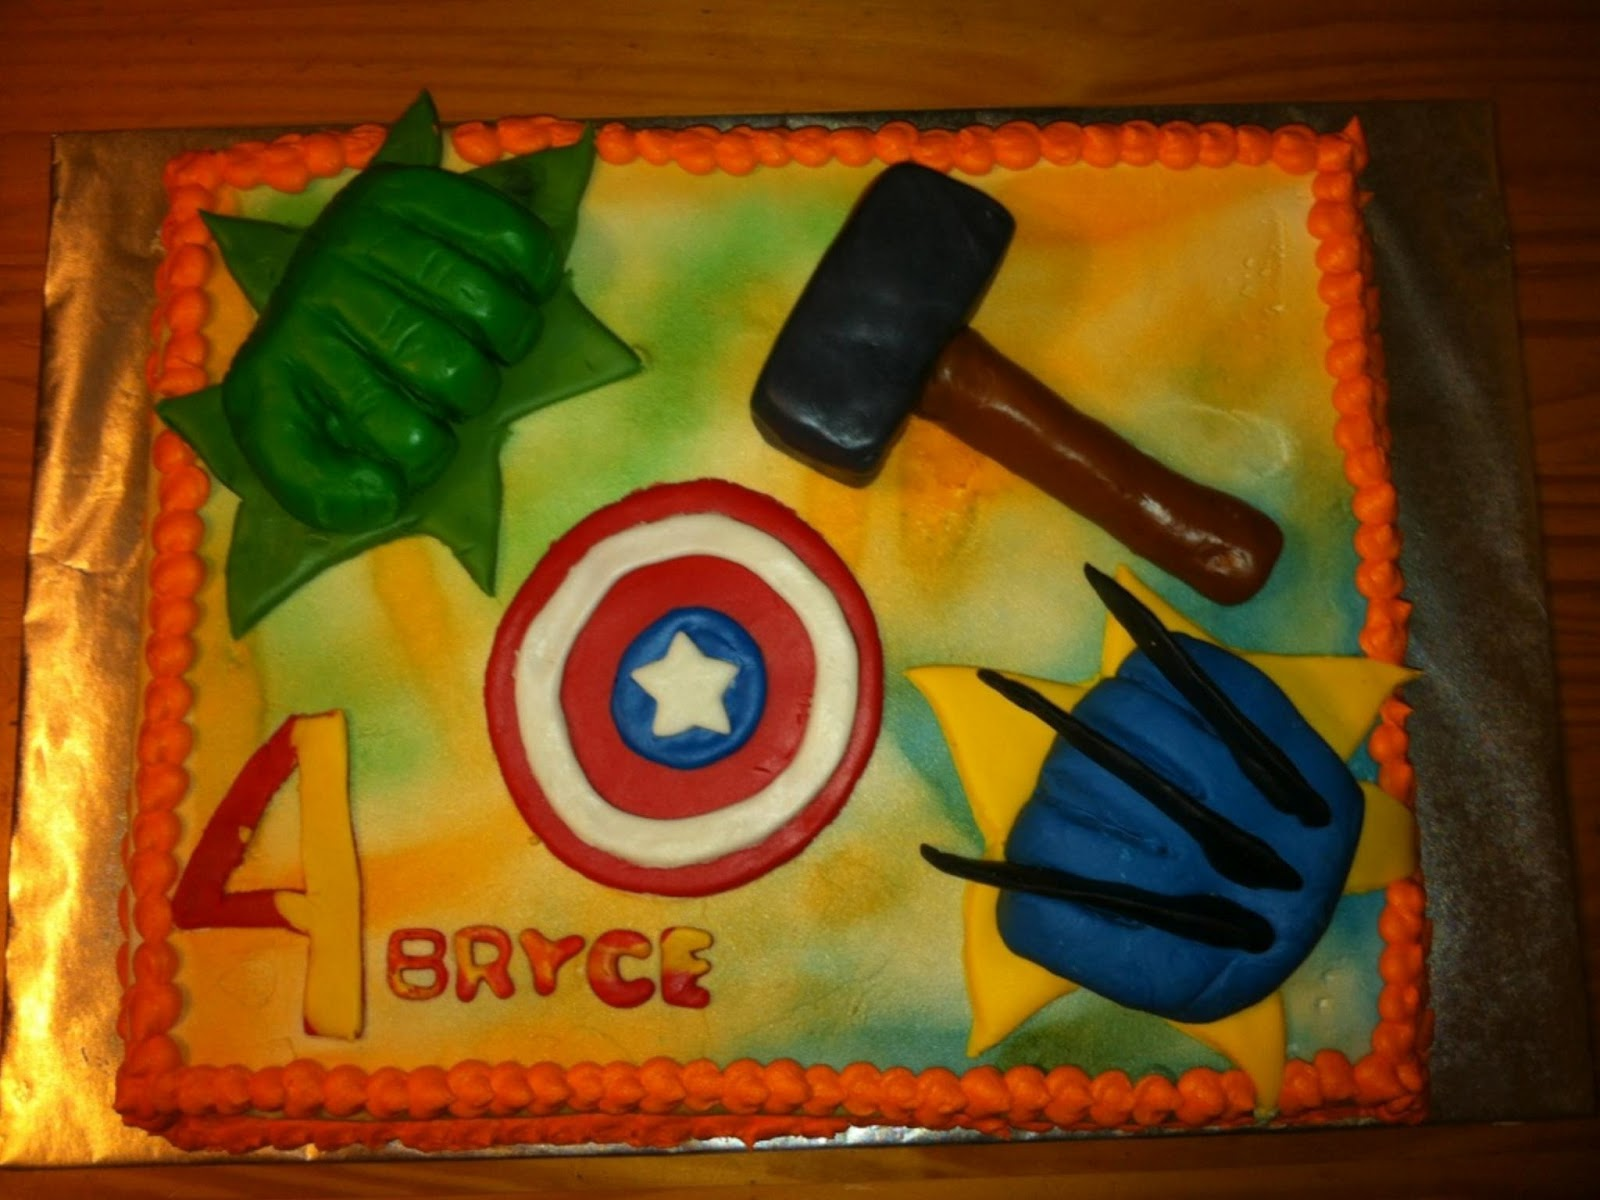 The Avengers, super hero theme cake. Chocolate cake with buttercream